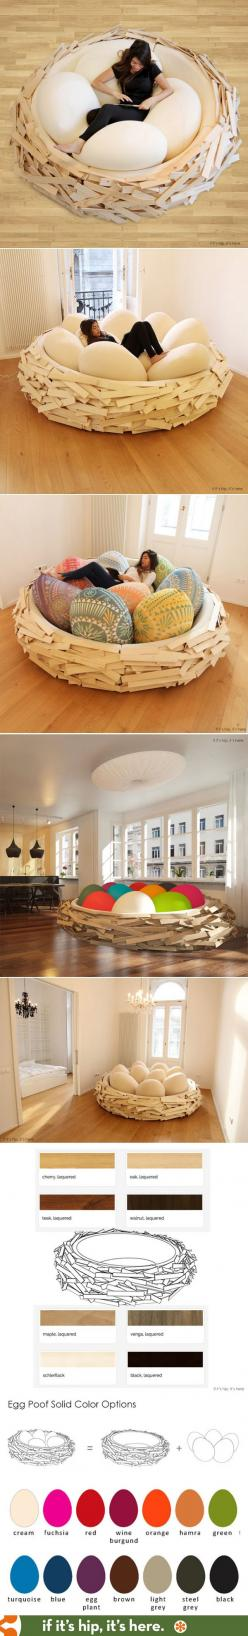 How awesome is this? The Giant Birdsnest, now available in various sizes and wood finishes.: Comfy Chair, Comfy Bed, Giant Beanbag